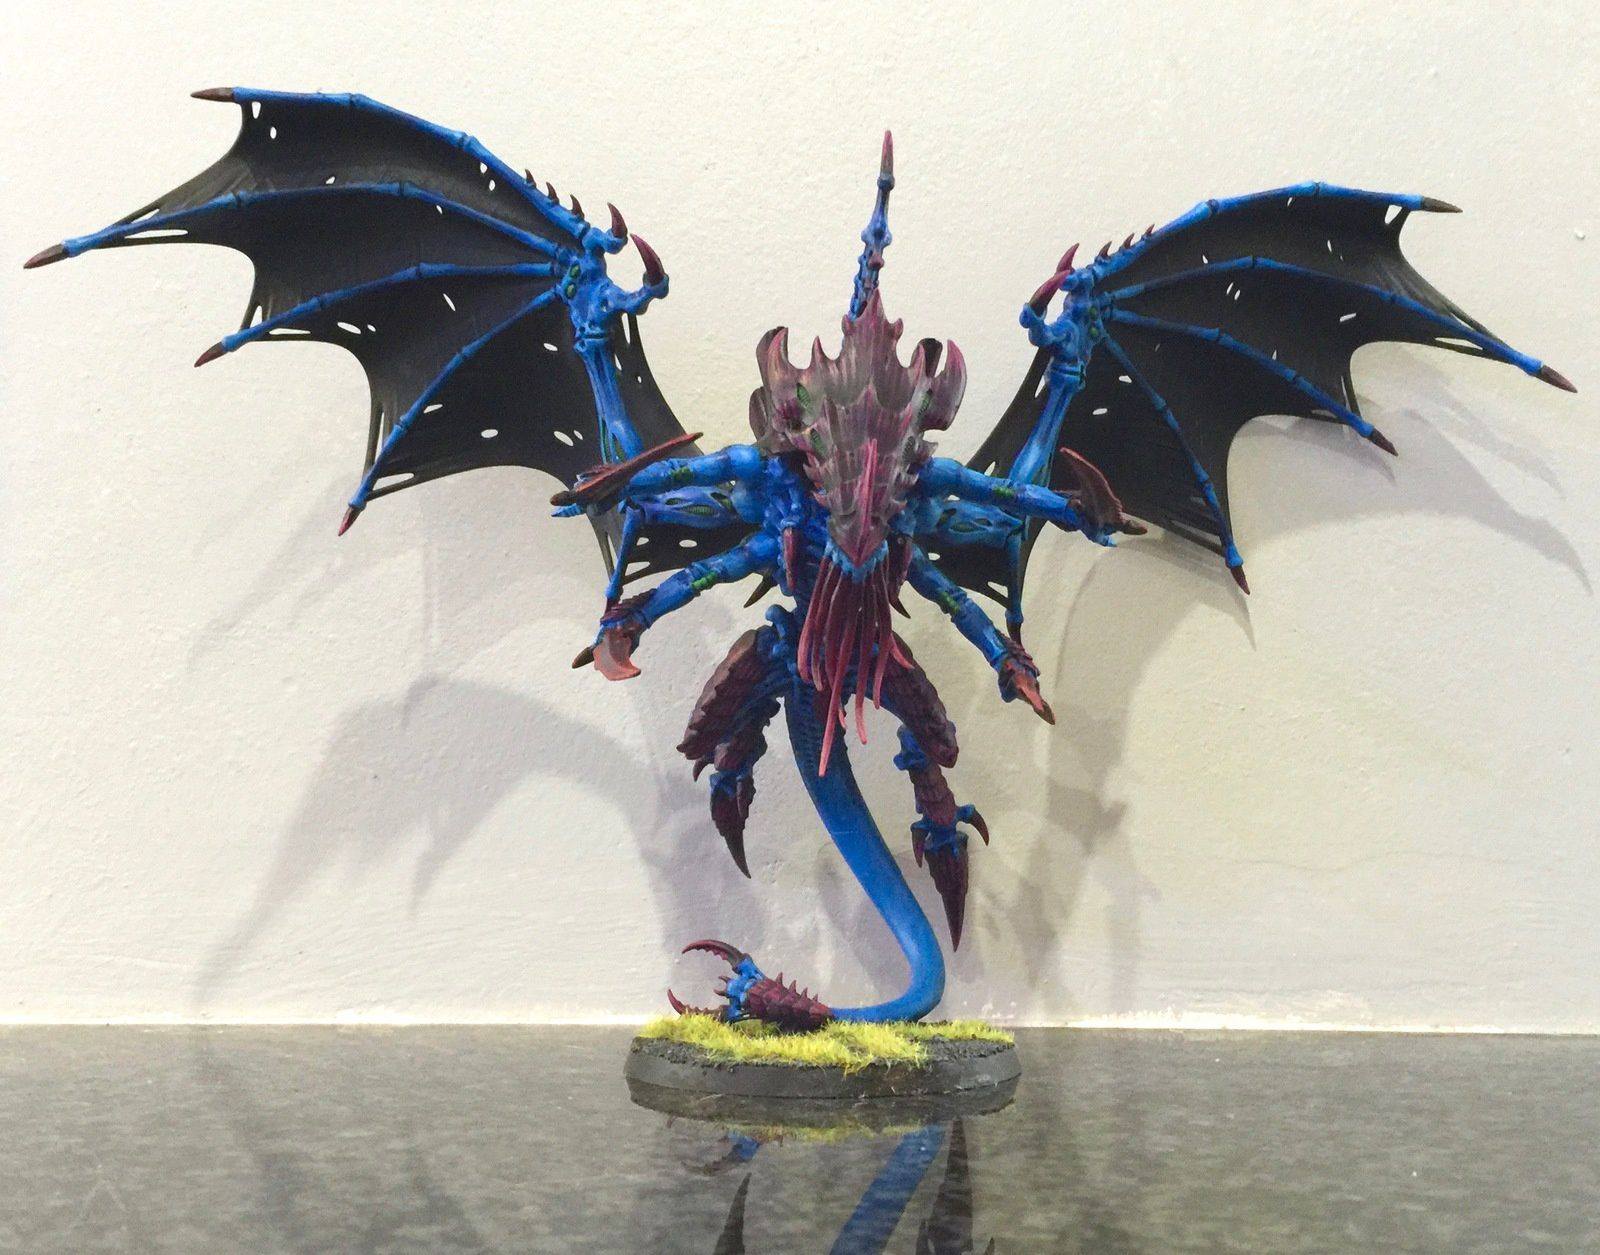 Tyranid Flying Swarmlord from HF Cthulhu painted !